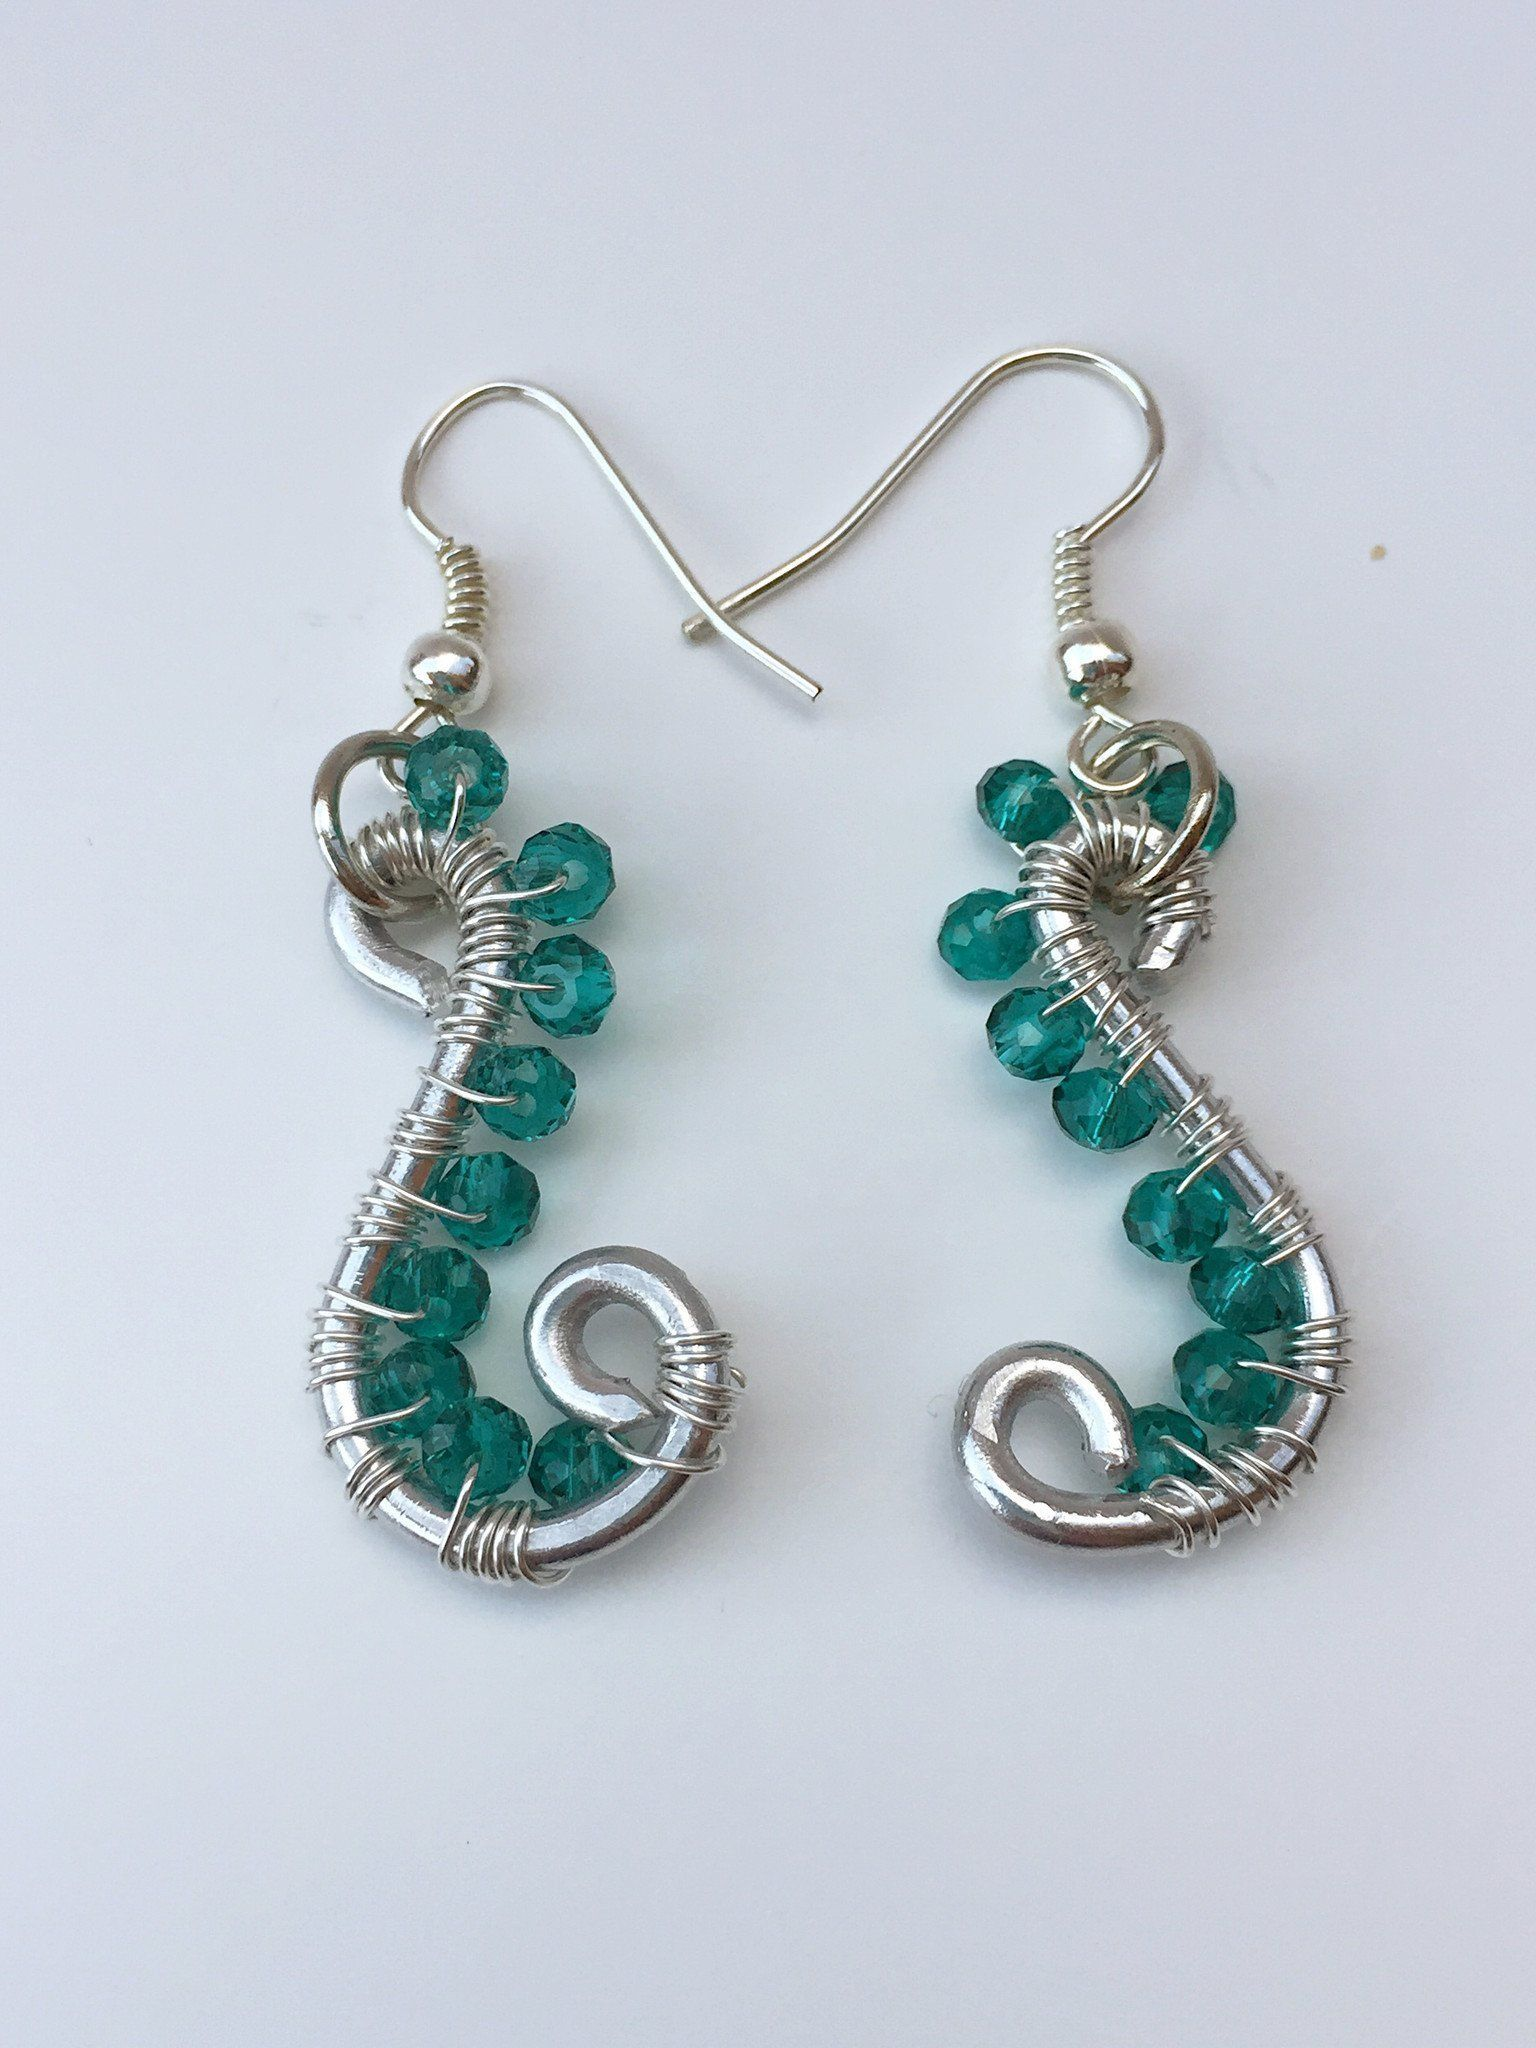 Wire wrapping earrings | Crafts--metal/maille/wire | Pinterest ...